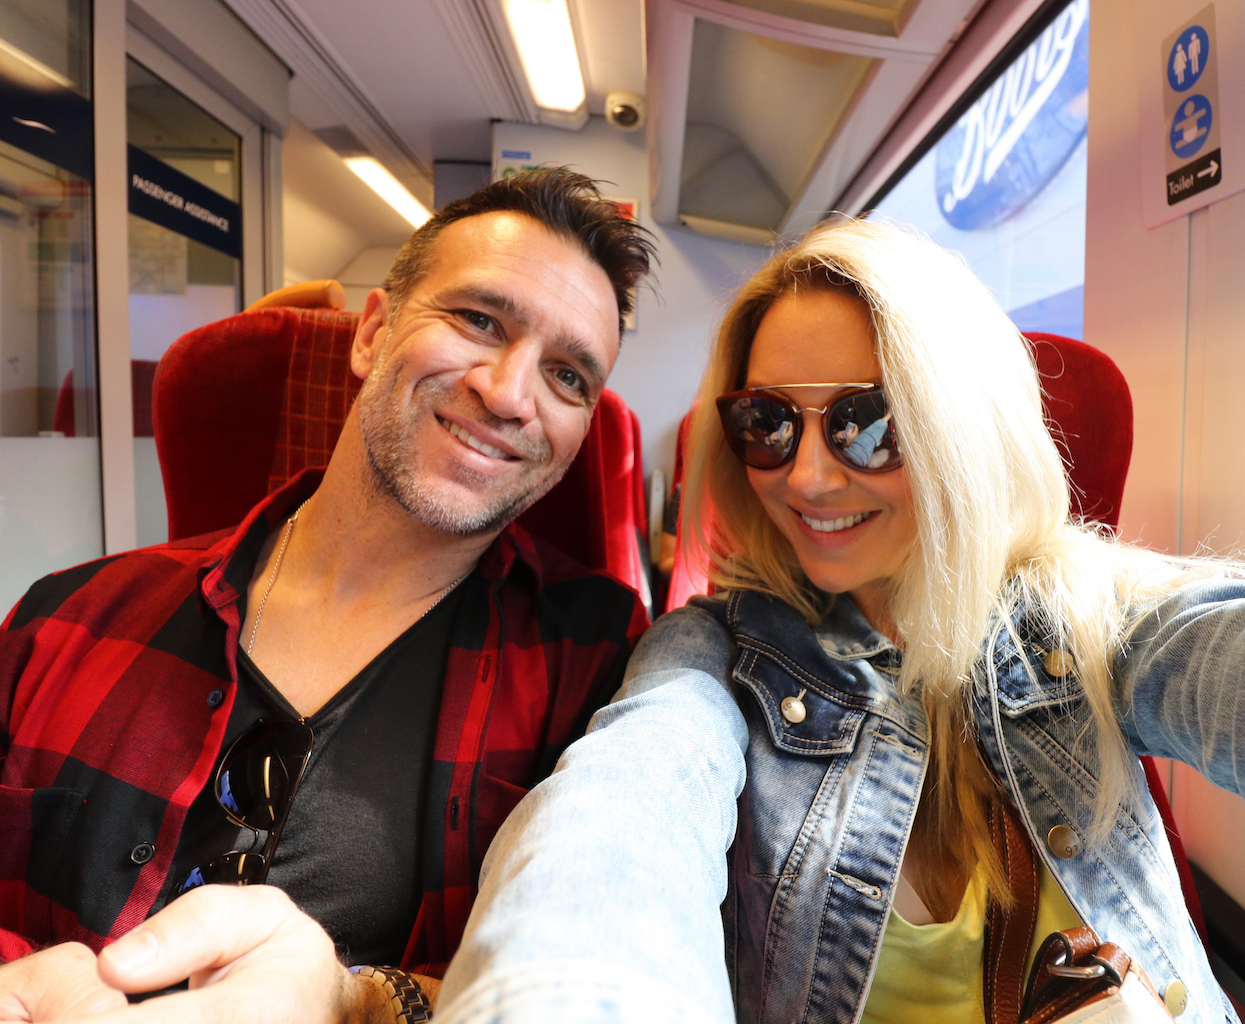 train-selfies-2-copy